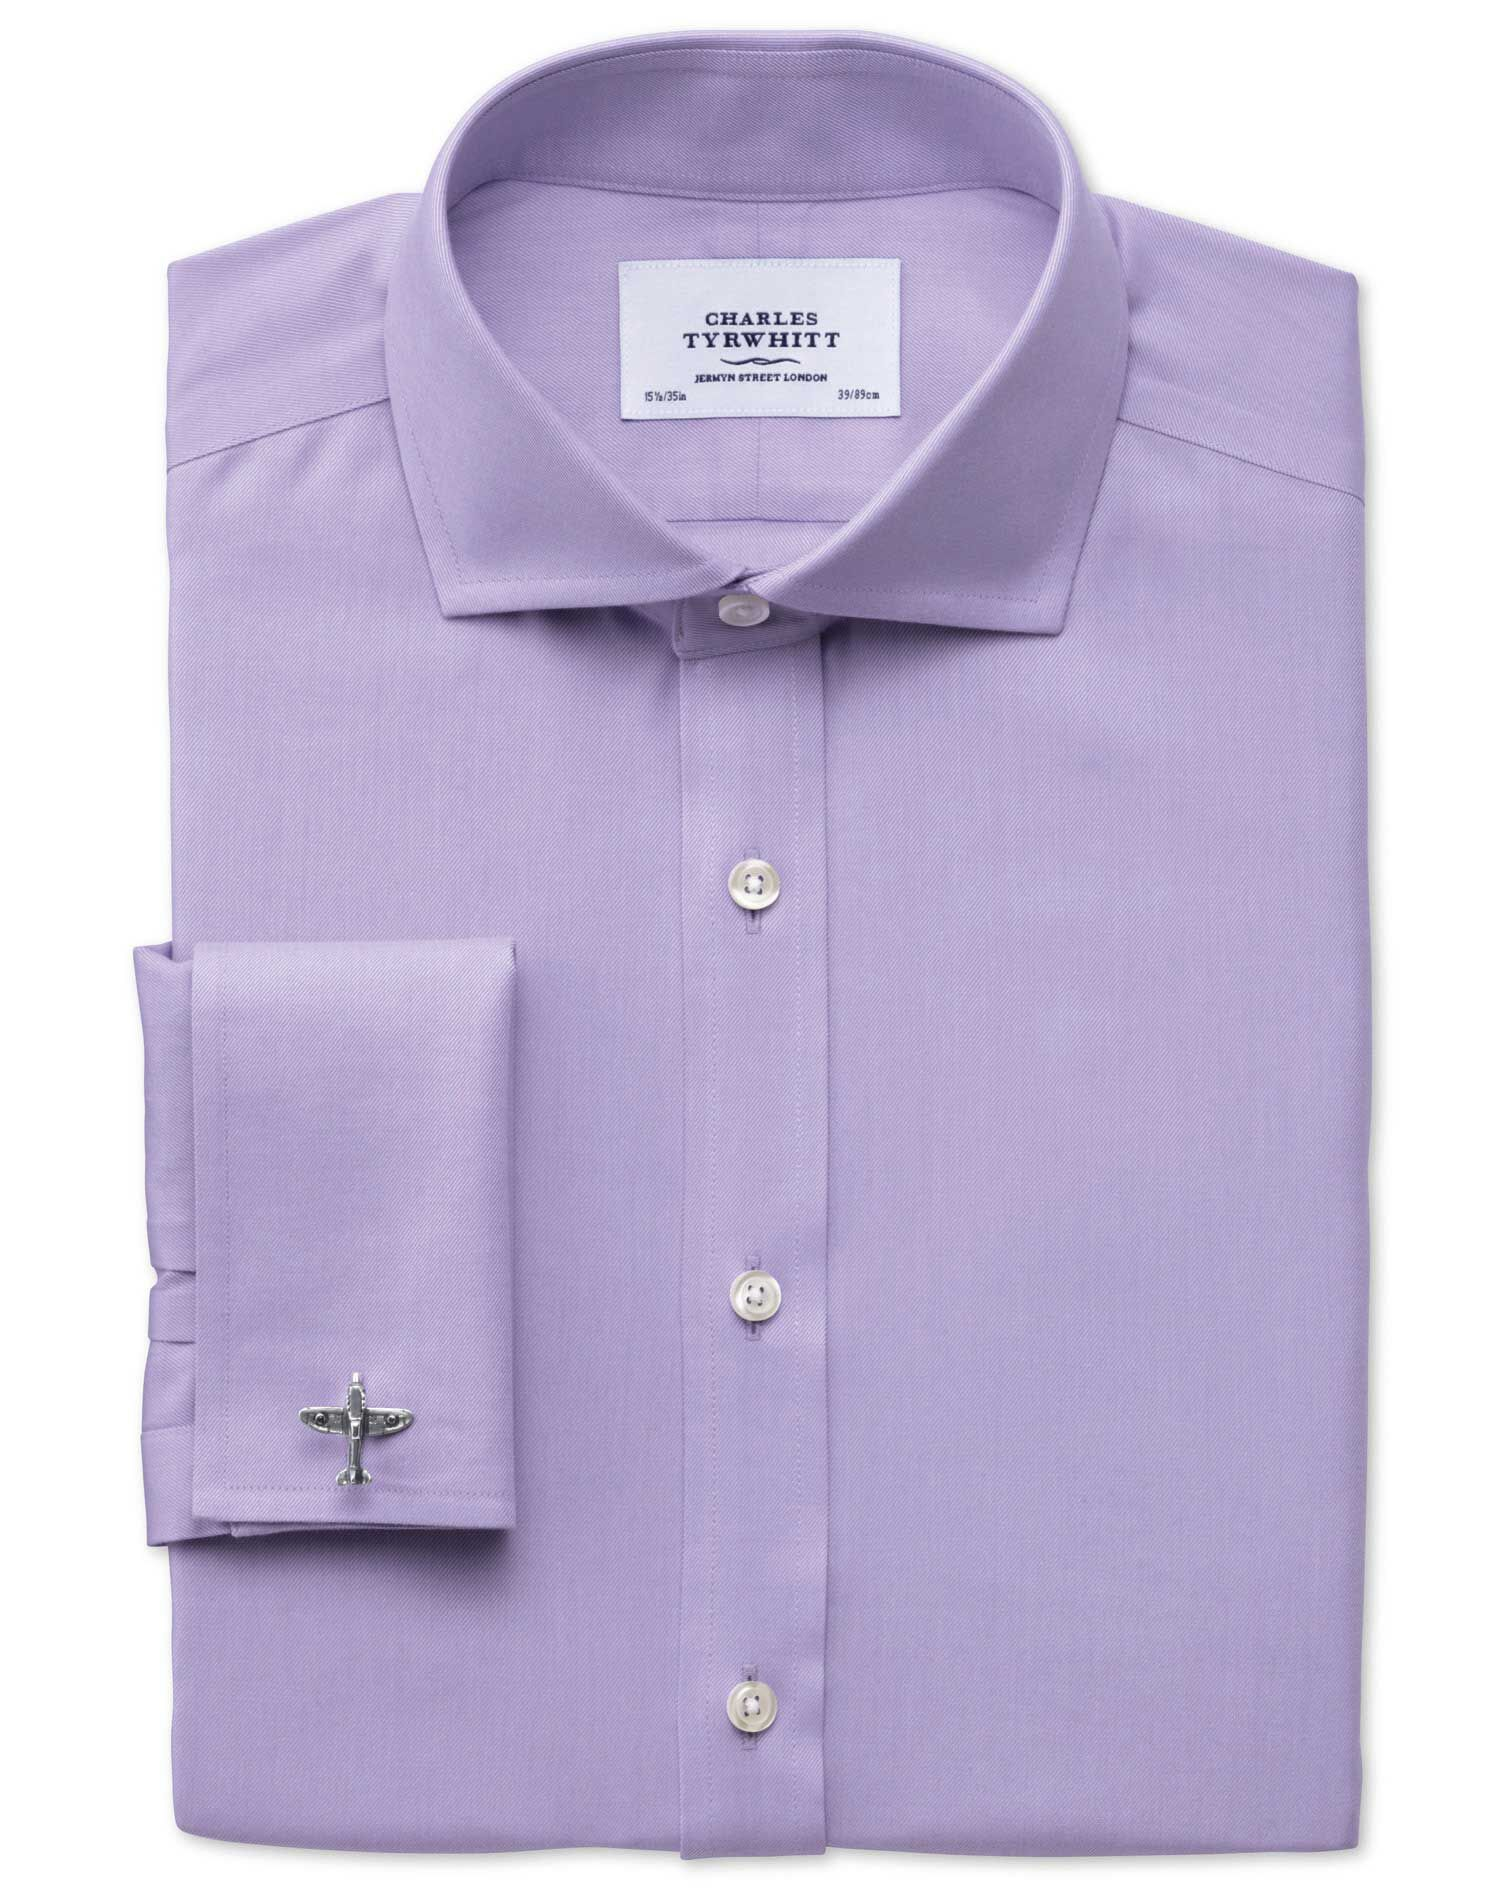 Slim Fit Cutaway Collar Non-Iron Twill Lilac Cotton Formal Shirt Single Cuff Size 17/38 by Charles T